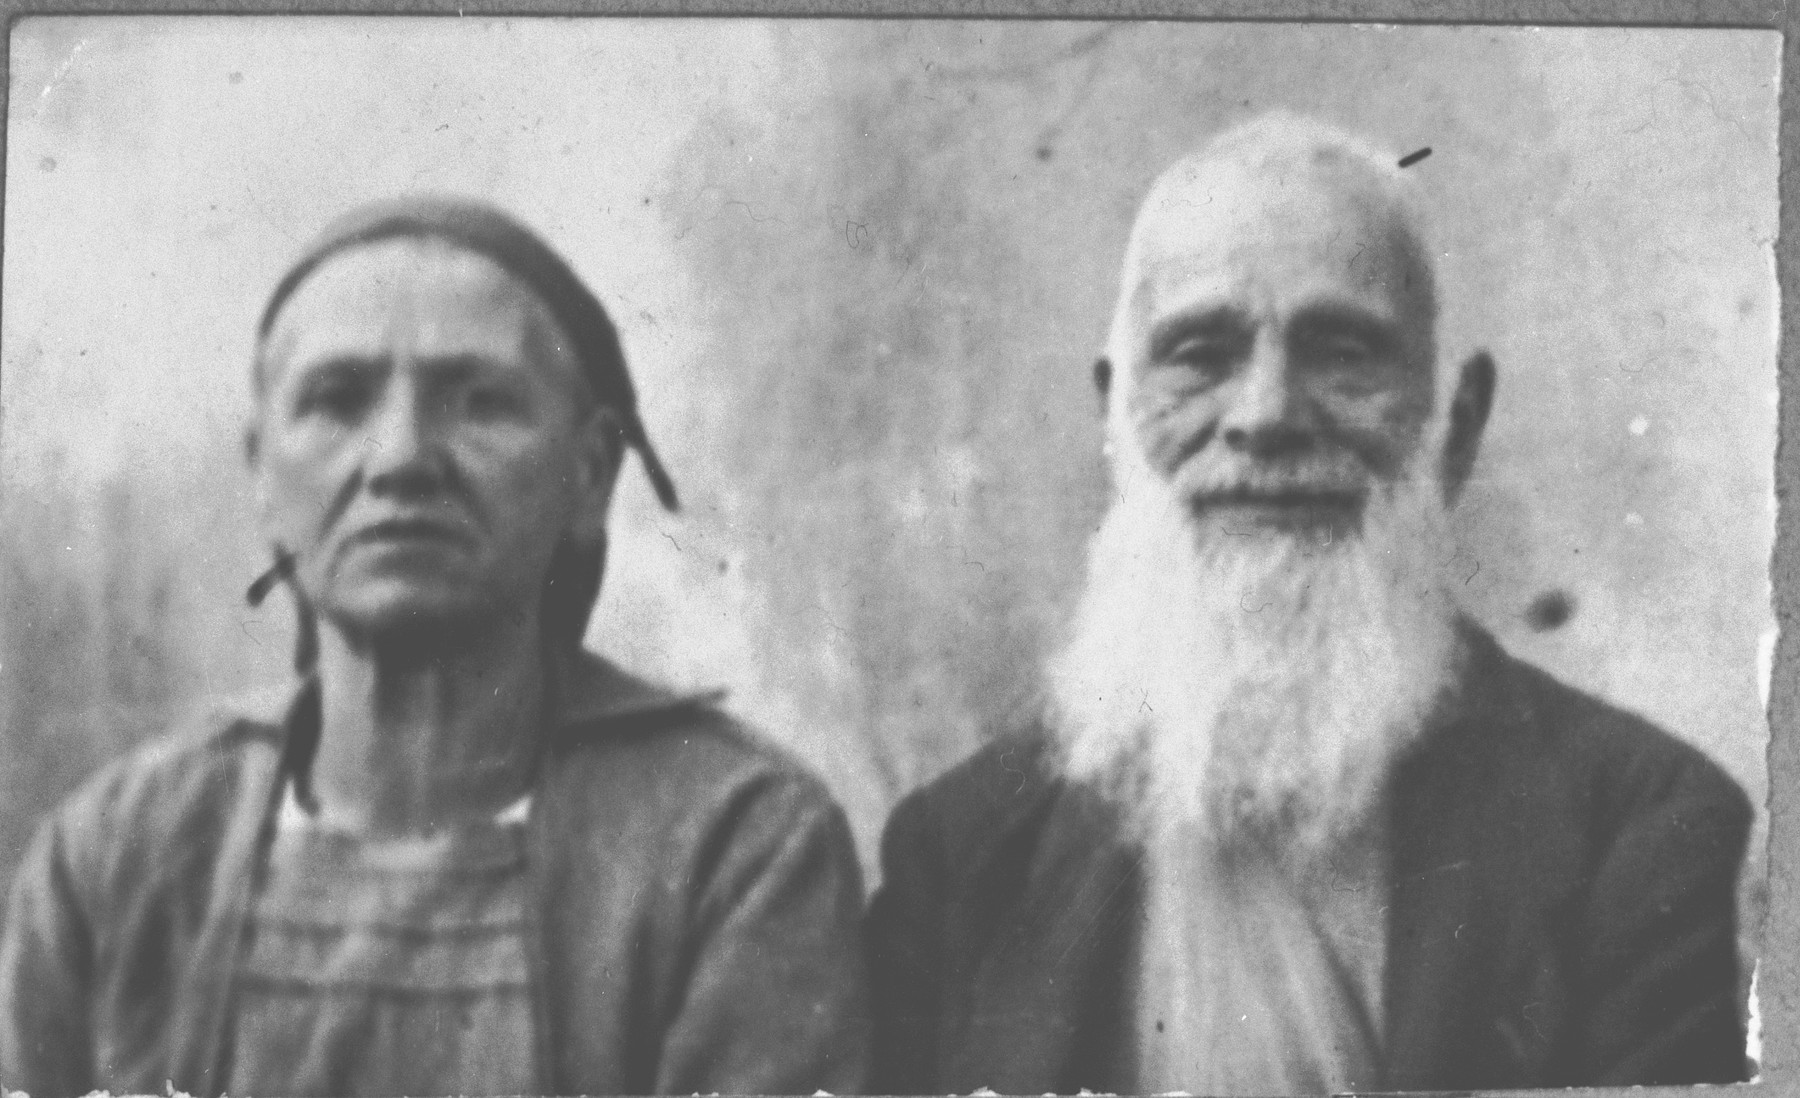 Portrait of Yakov Kamchi, son of Isak Kamchi, and Yakov's wife, Rebeka.  He was a grocer.  They lived at Dr. Raisa 134 in Bitola.